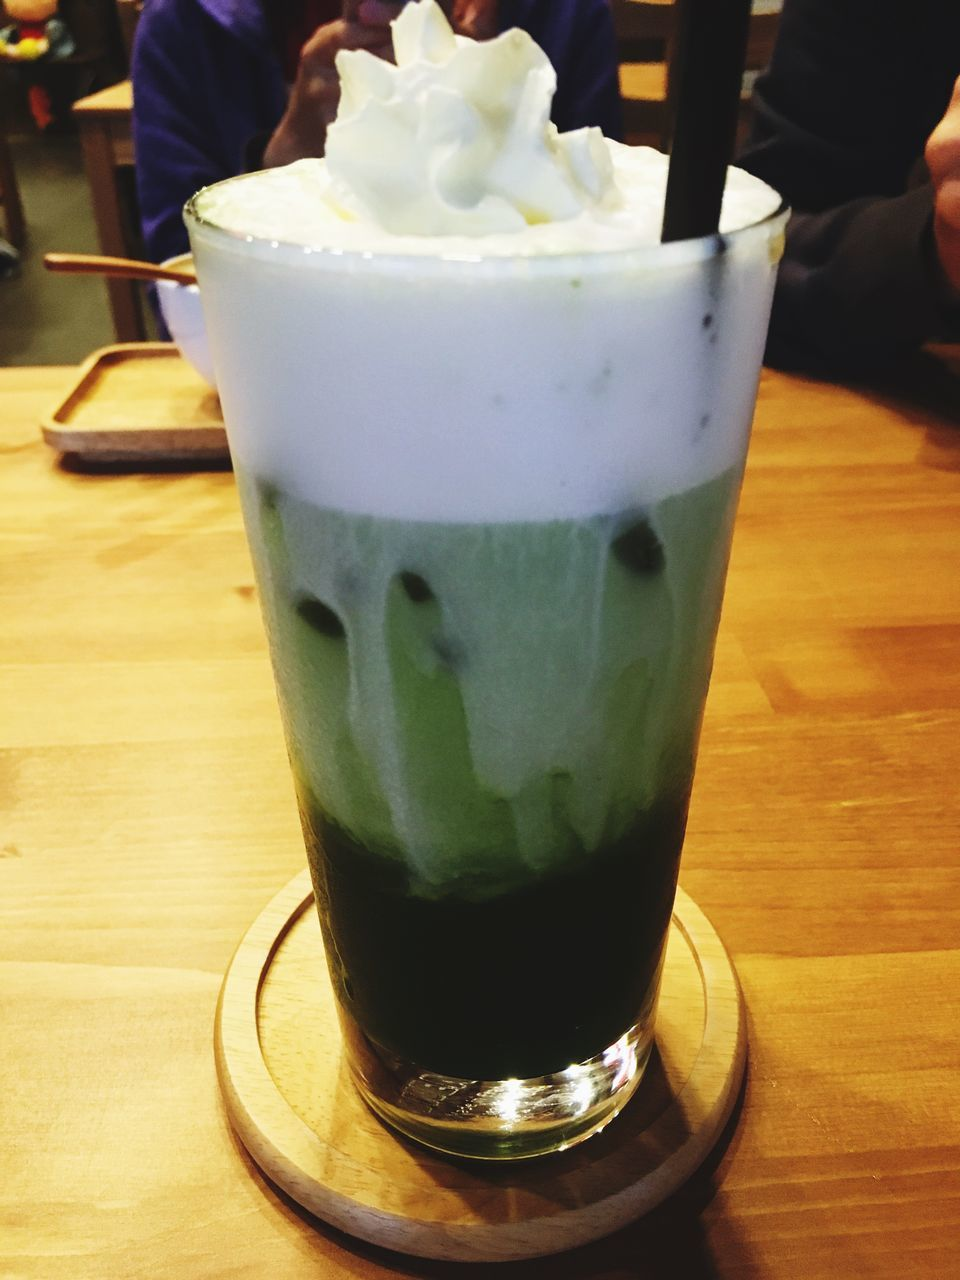 food and drink, table, drink, freshness, drinking glass, refreshment, serving size, indoors, food, close-up, restaurant, incidental people, green color, indulgence, temptation, sweet food, unhealthy eating, frothy drink, ready-to-eat, real people, dessert, cold temperature, matcha tea, day